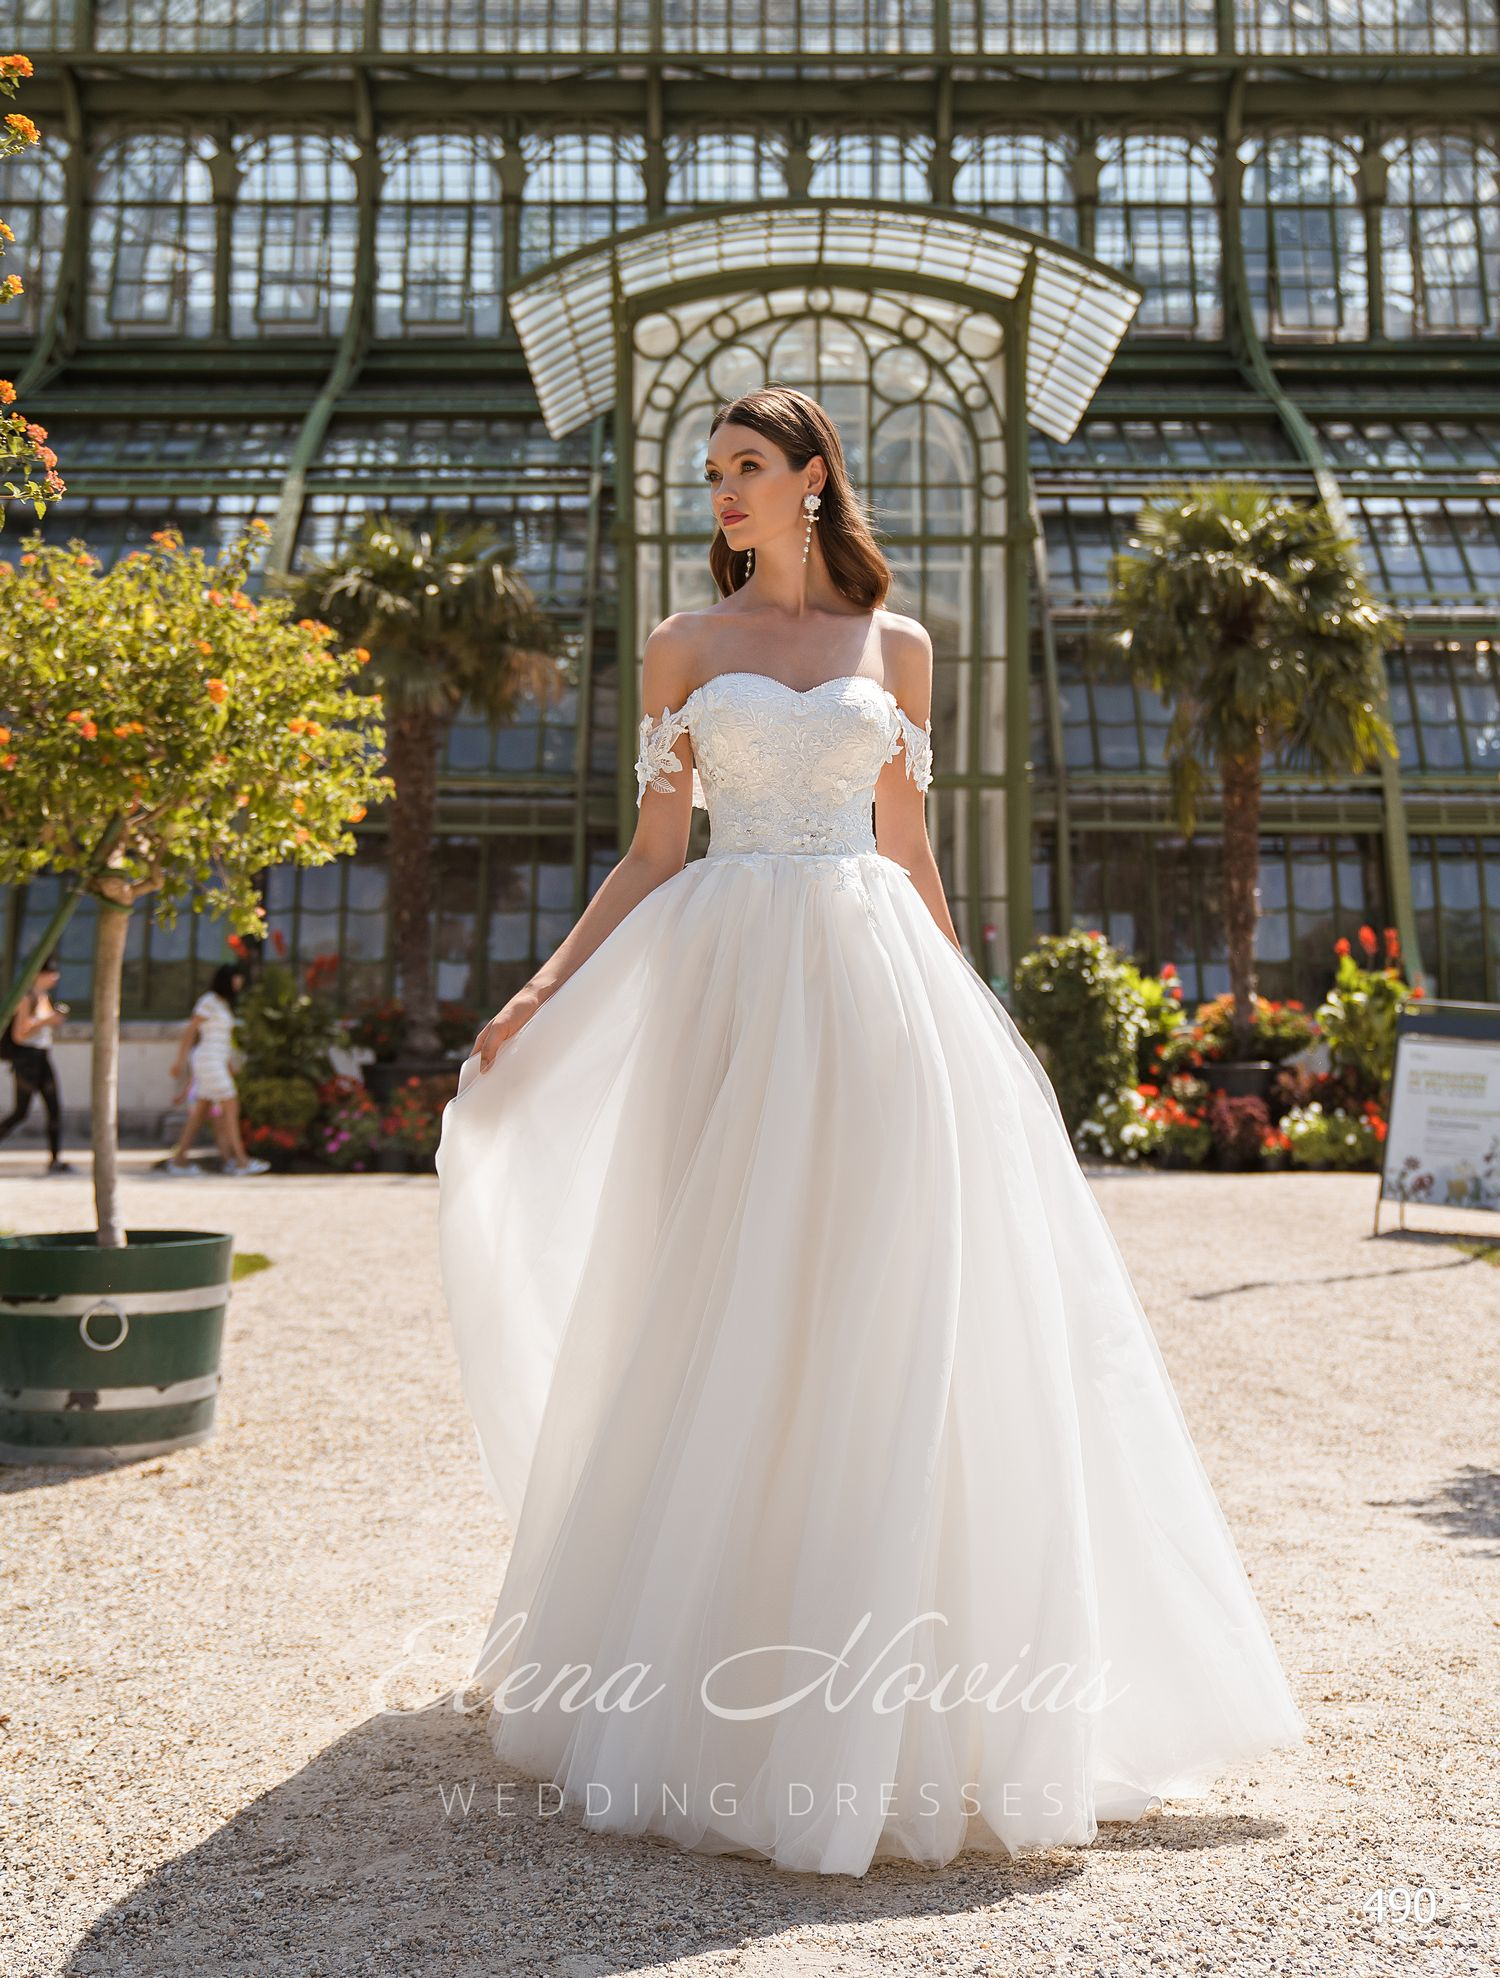 Wedding dresses 490